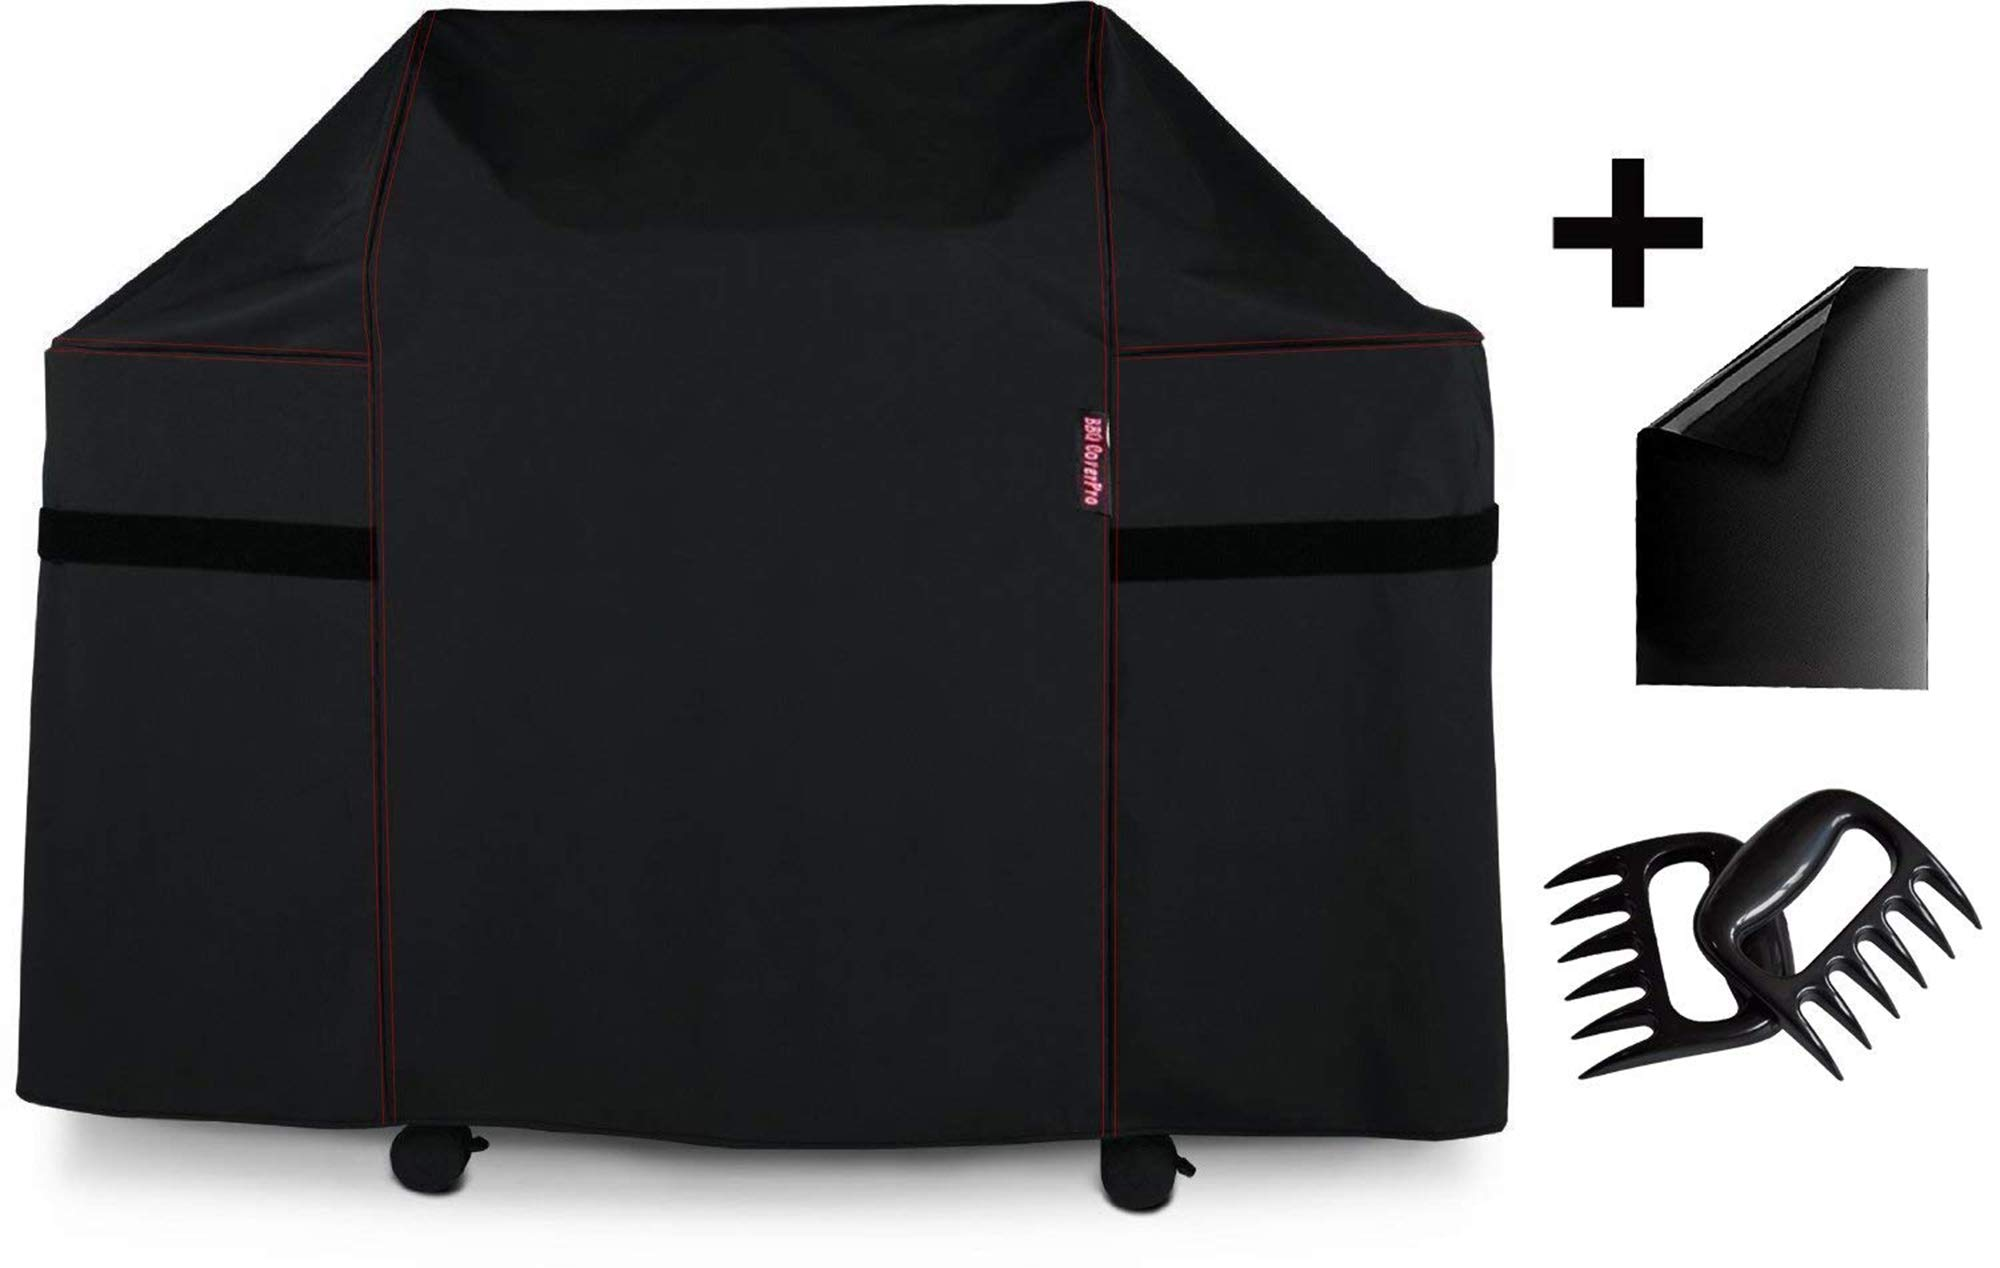 BBQ Coverpro 7131 Grill Cover for Weber Genesis II 4 Burner Grill Including Grill mat and Bear Claw Meat Shredder by BBQ Coverpro